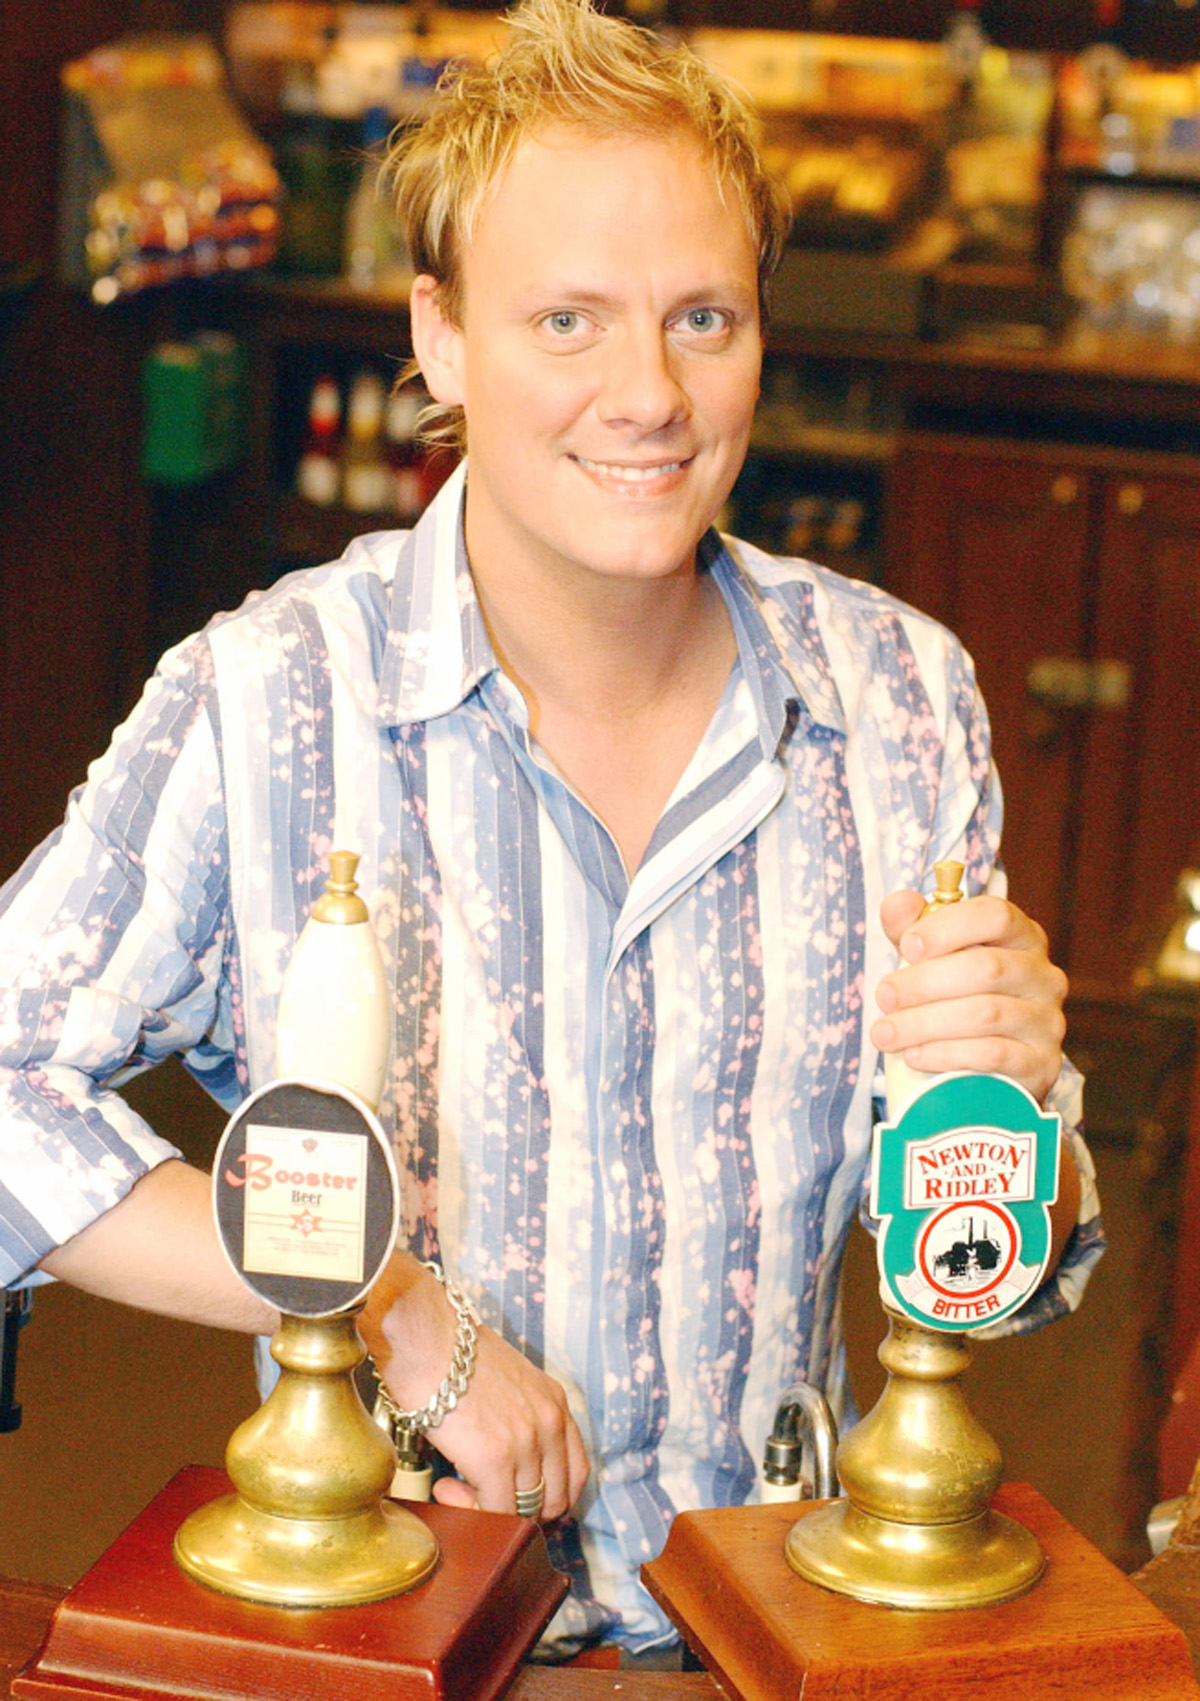 Antony Cotton as Sean Tully